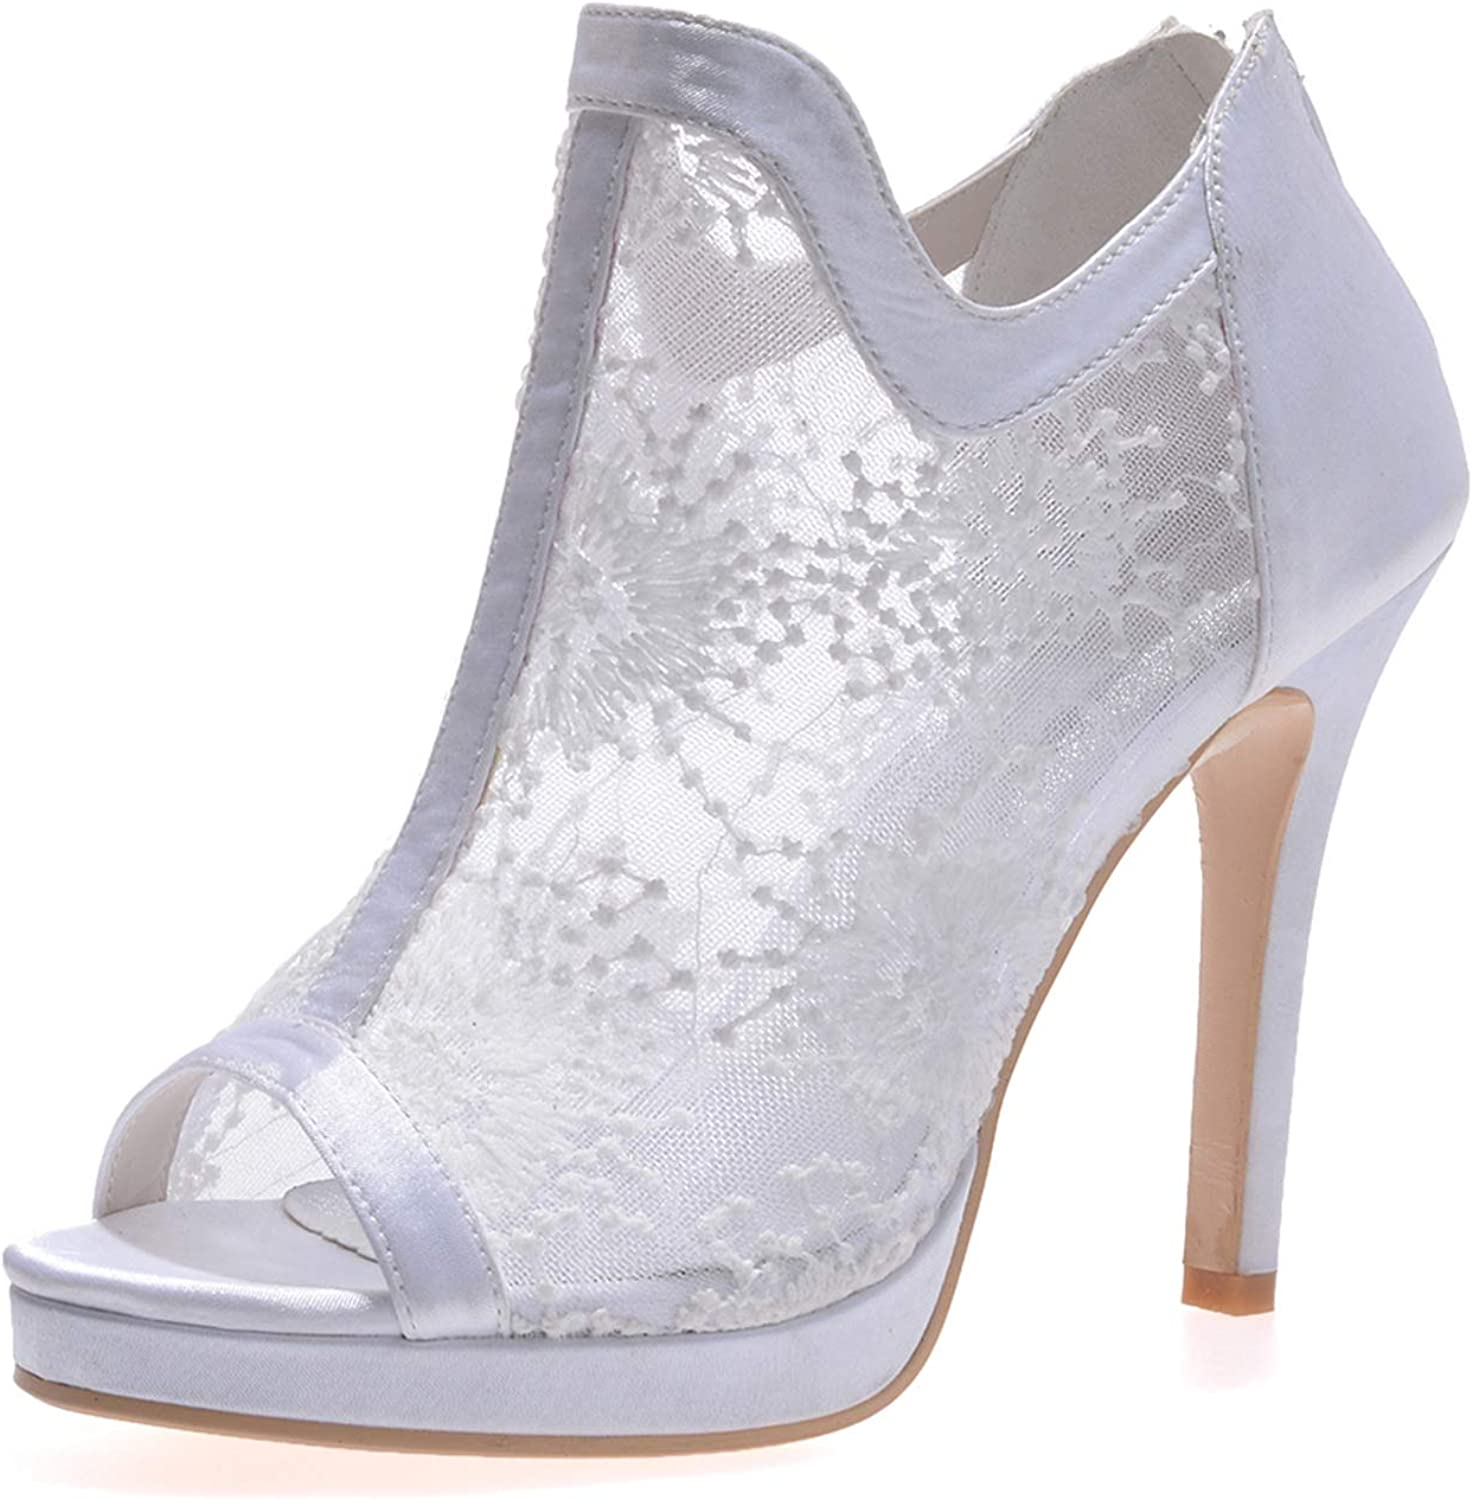 LLBubble Women's High Heels Peep Toe Lace Ankle Boot Wedding shoes Breathable Stiletto Heel Formal Party Bridal Pumps 5915-02